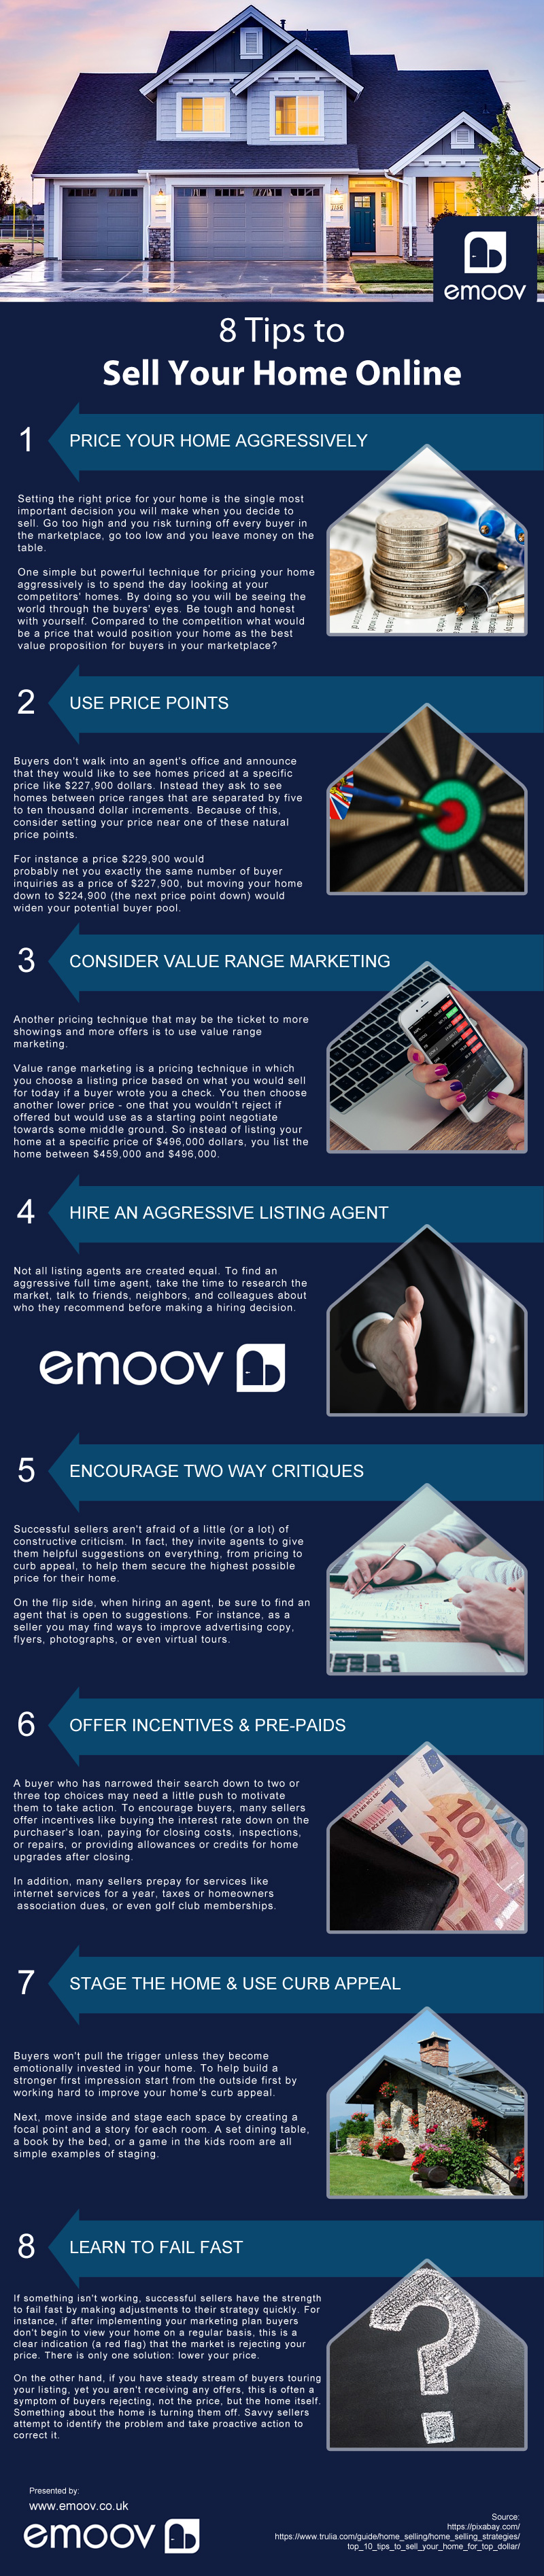 8 Tips to Sell Your Home Online